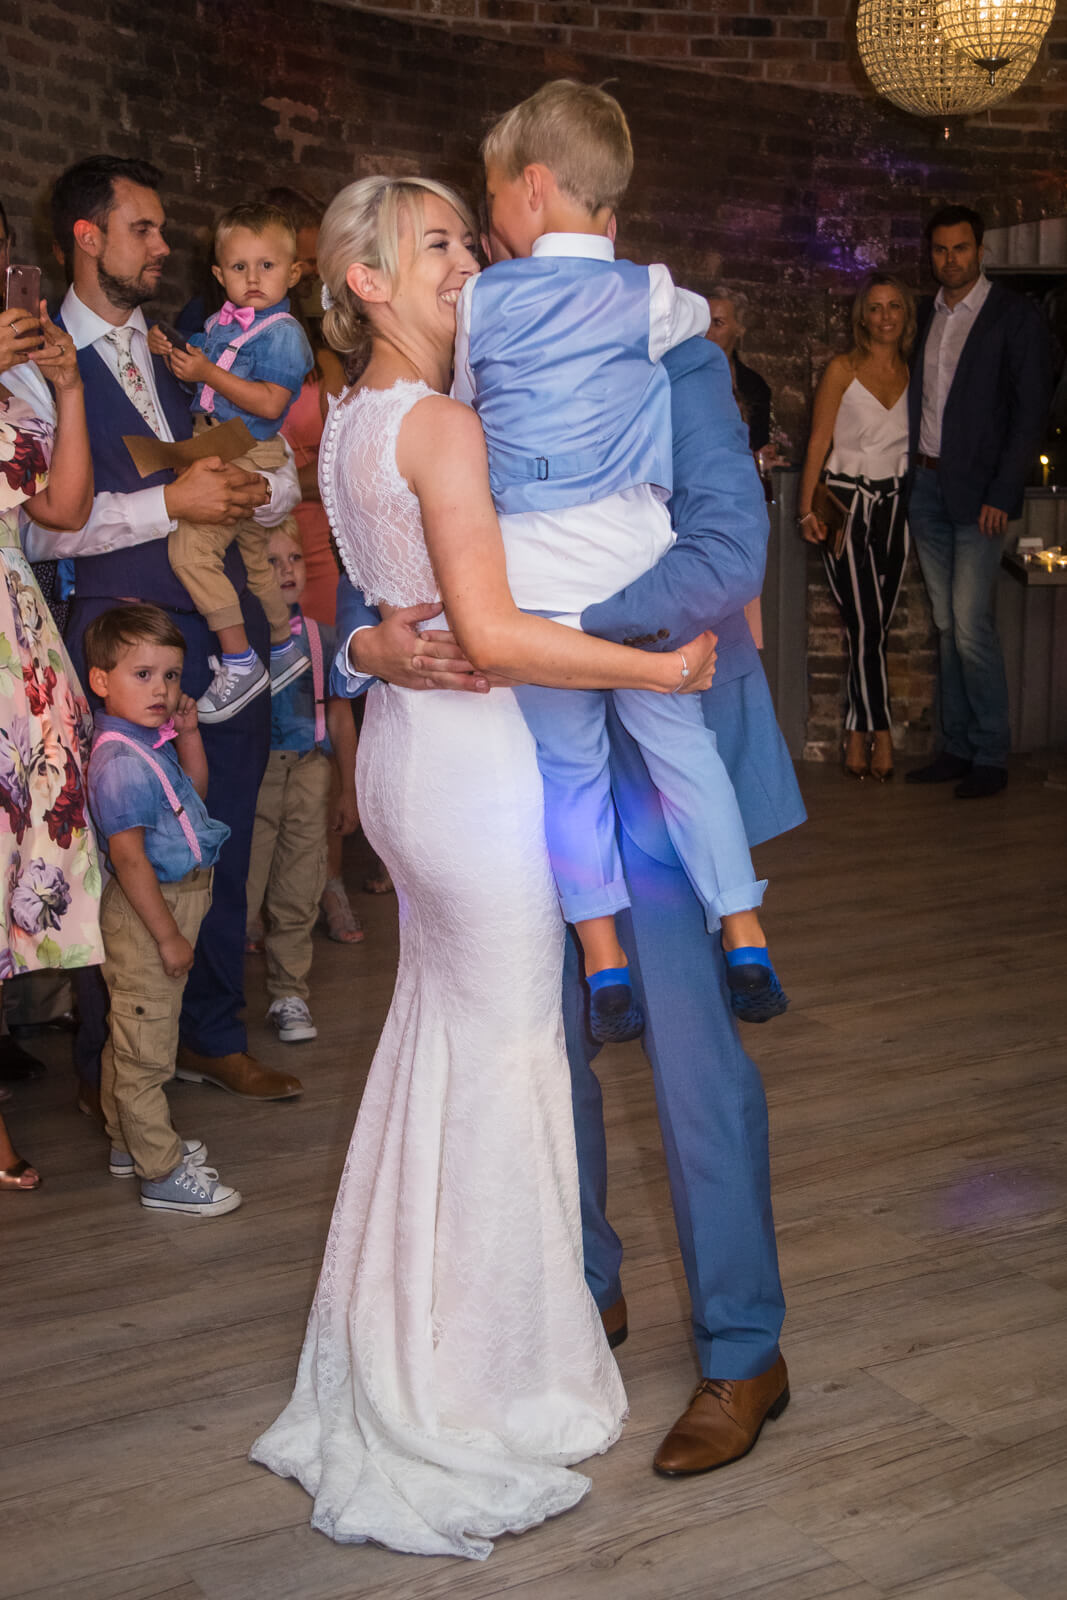 Bride and groom share their first dance with their son.